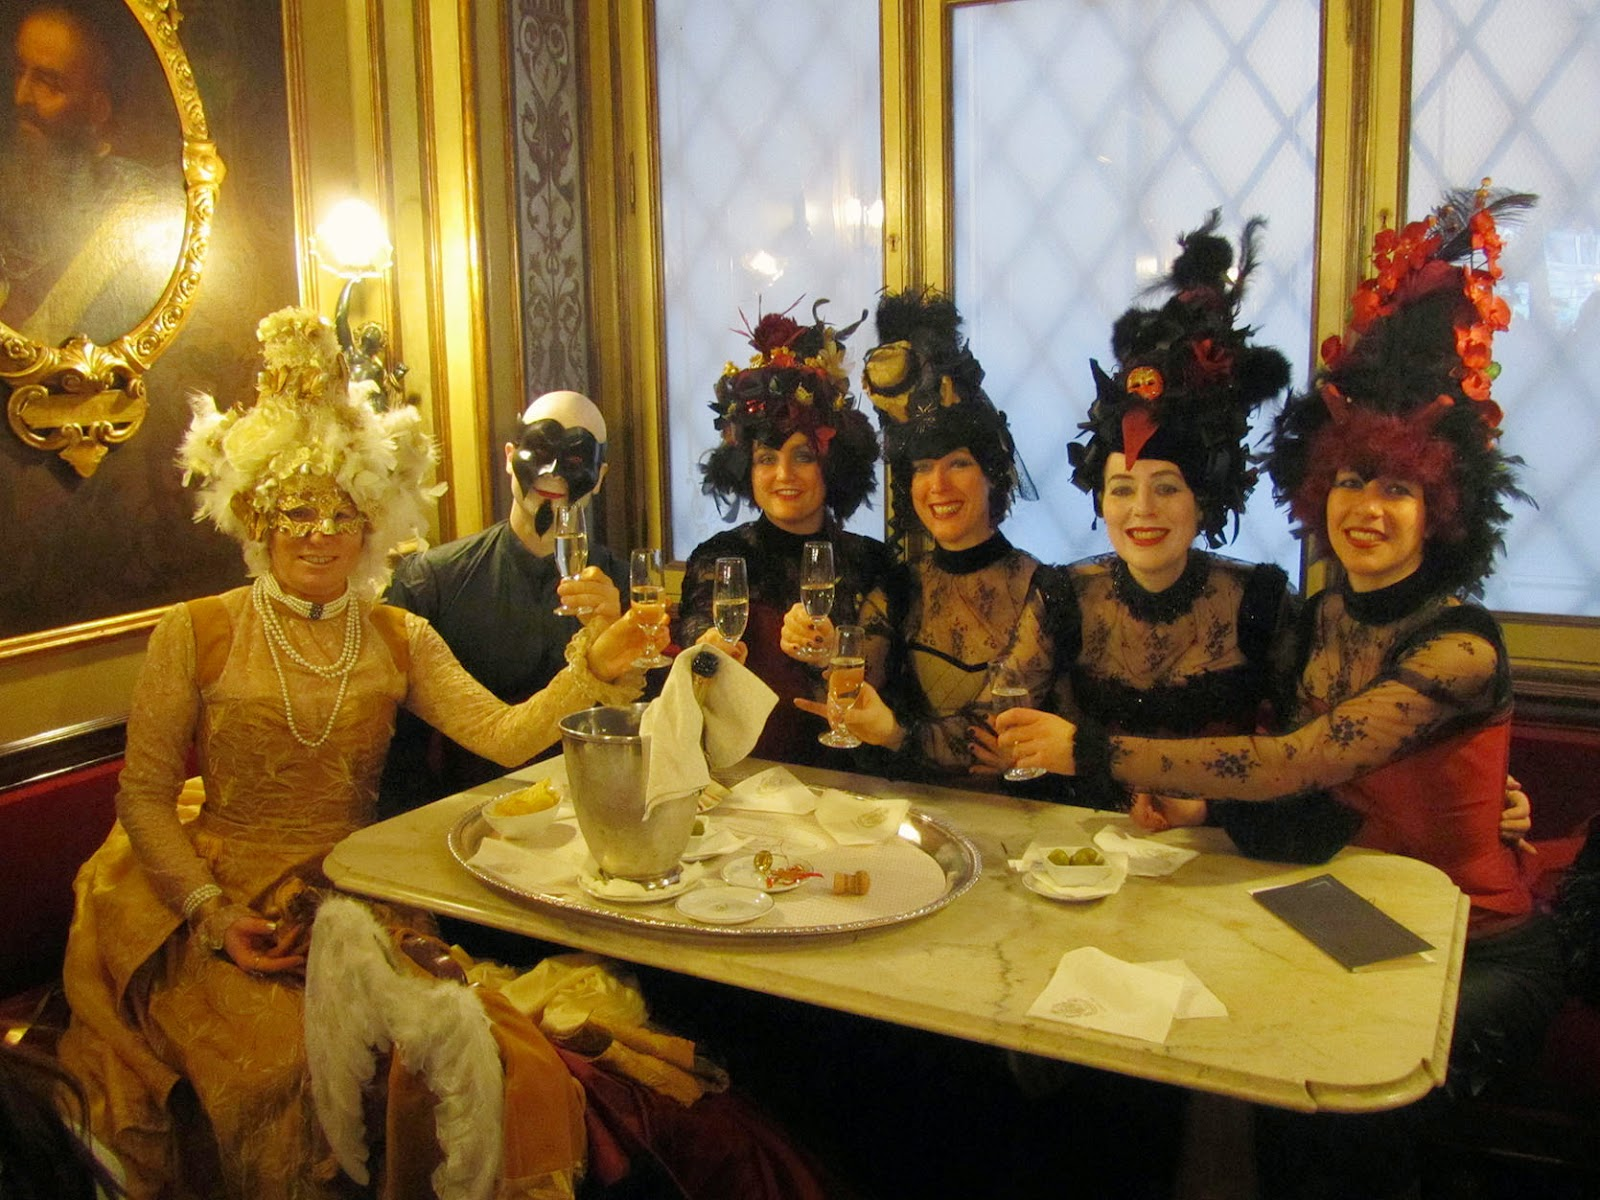 costumed in Venice